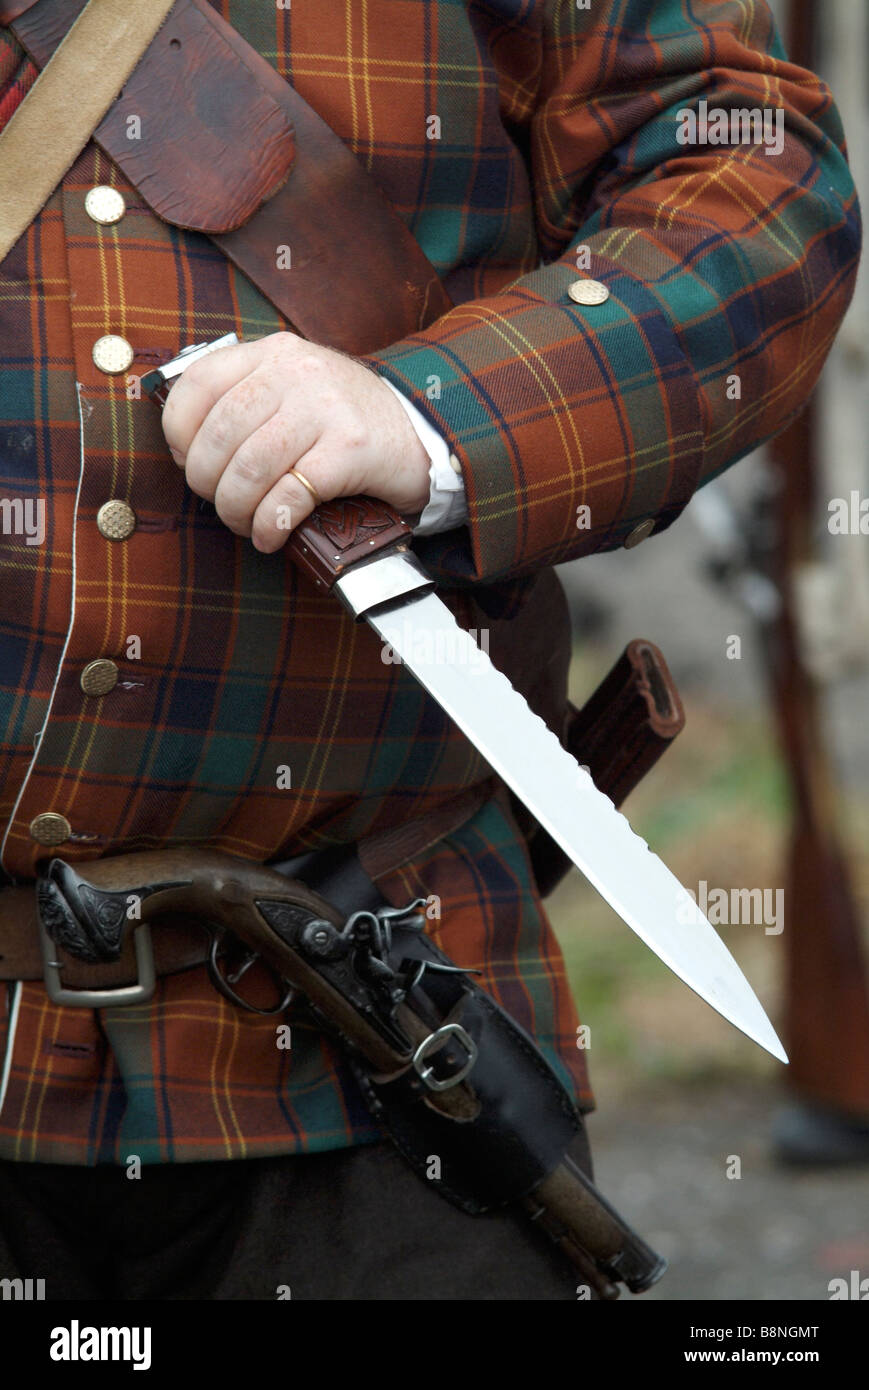 Short sword carried by a Jacobite soldier at the 2008 re-enactment of the Battle of Prestonpans, Scotland. Stock Photo